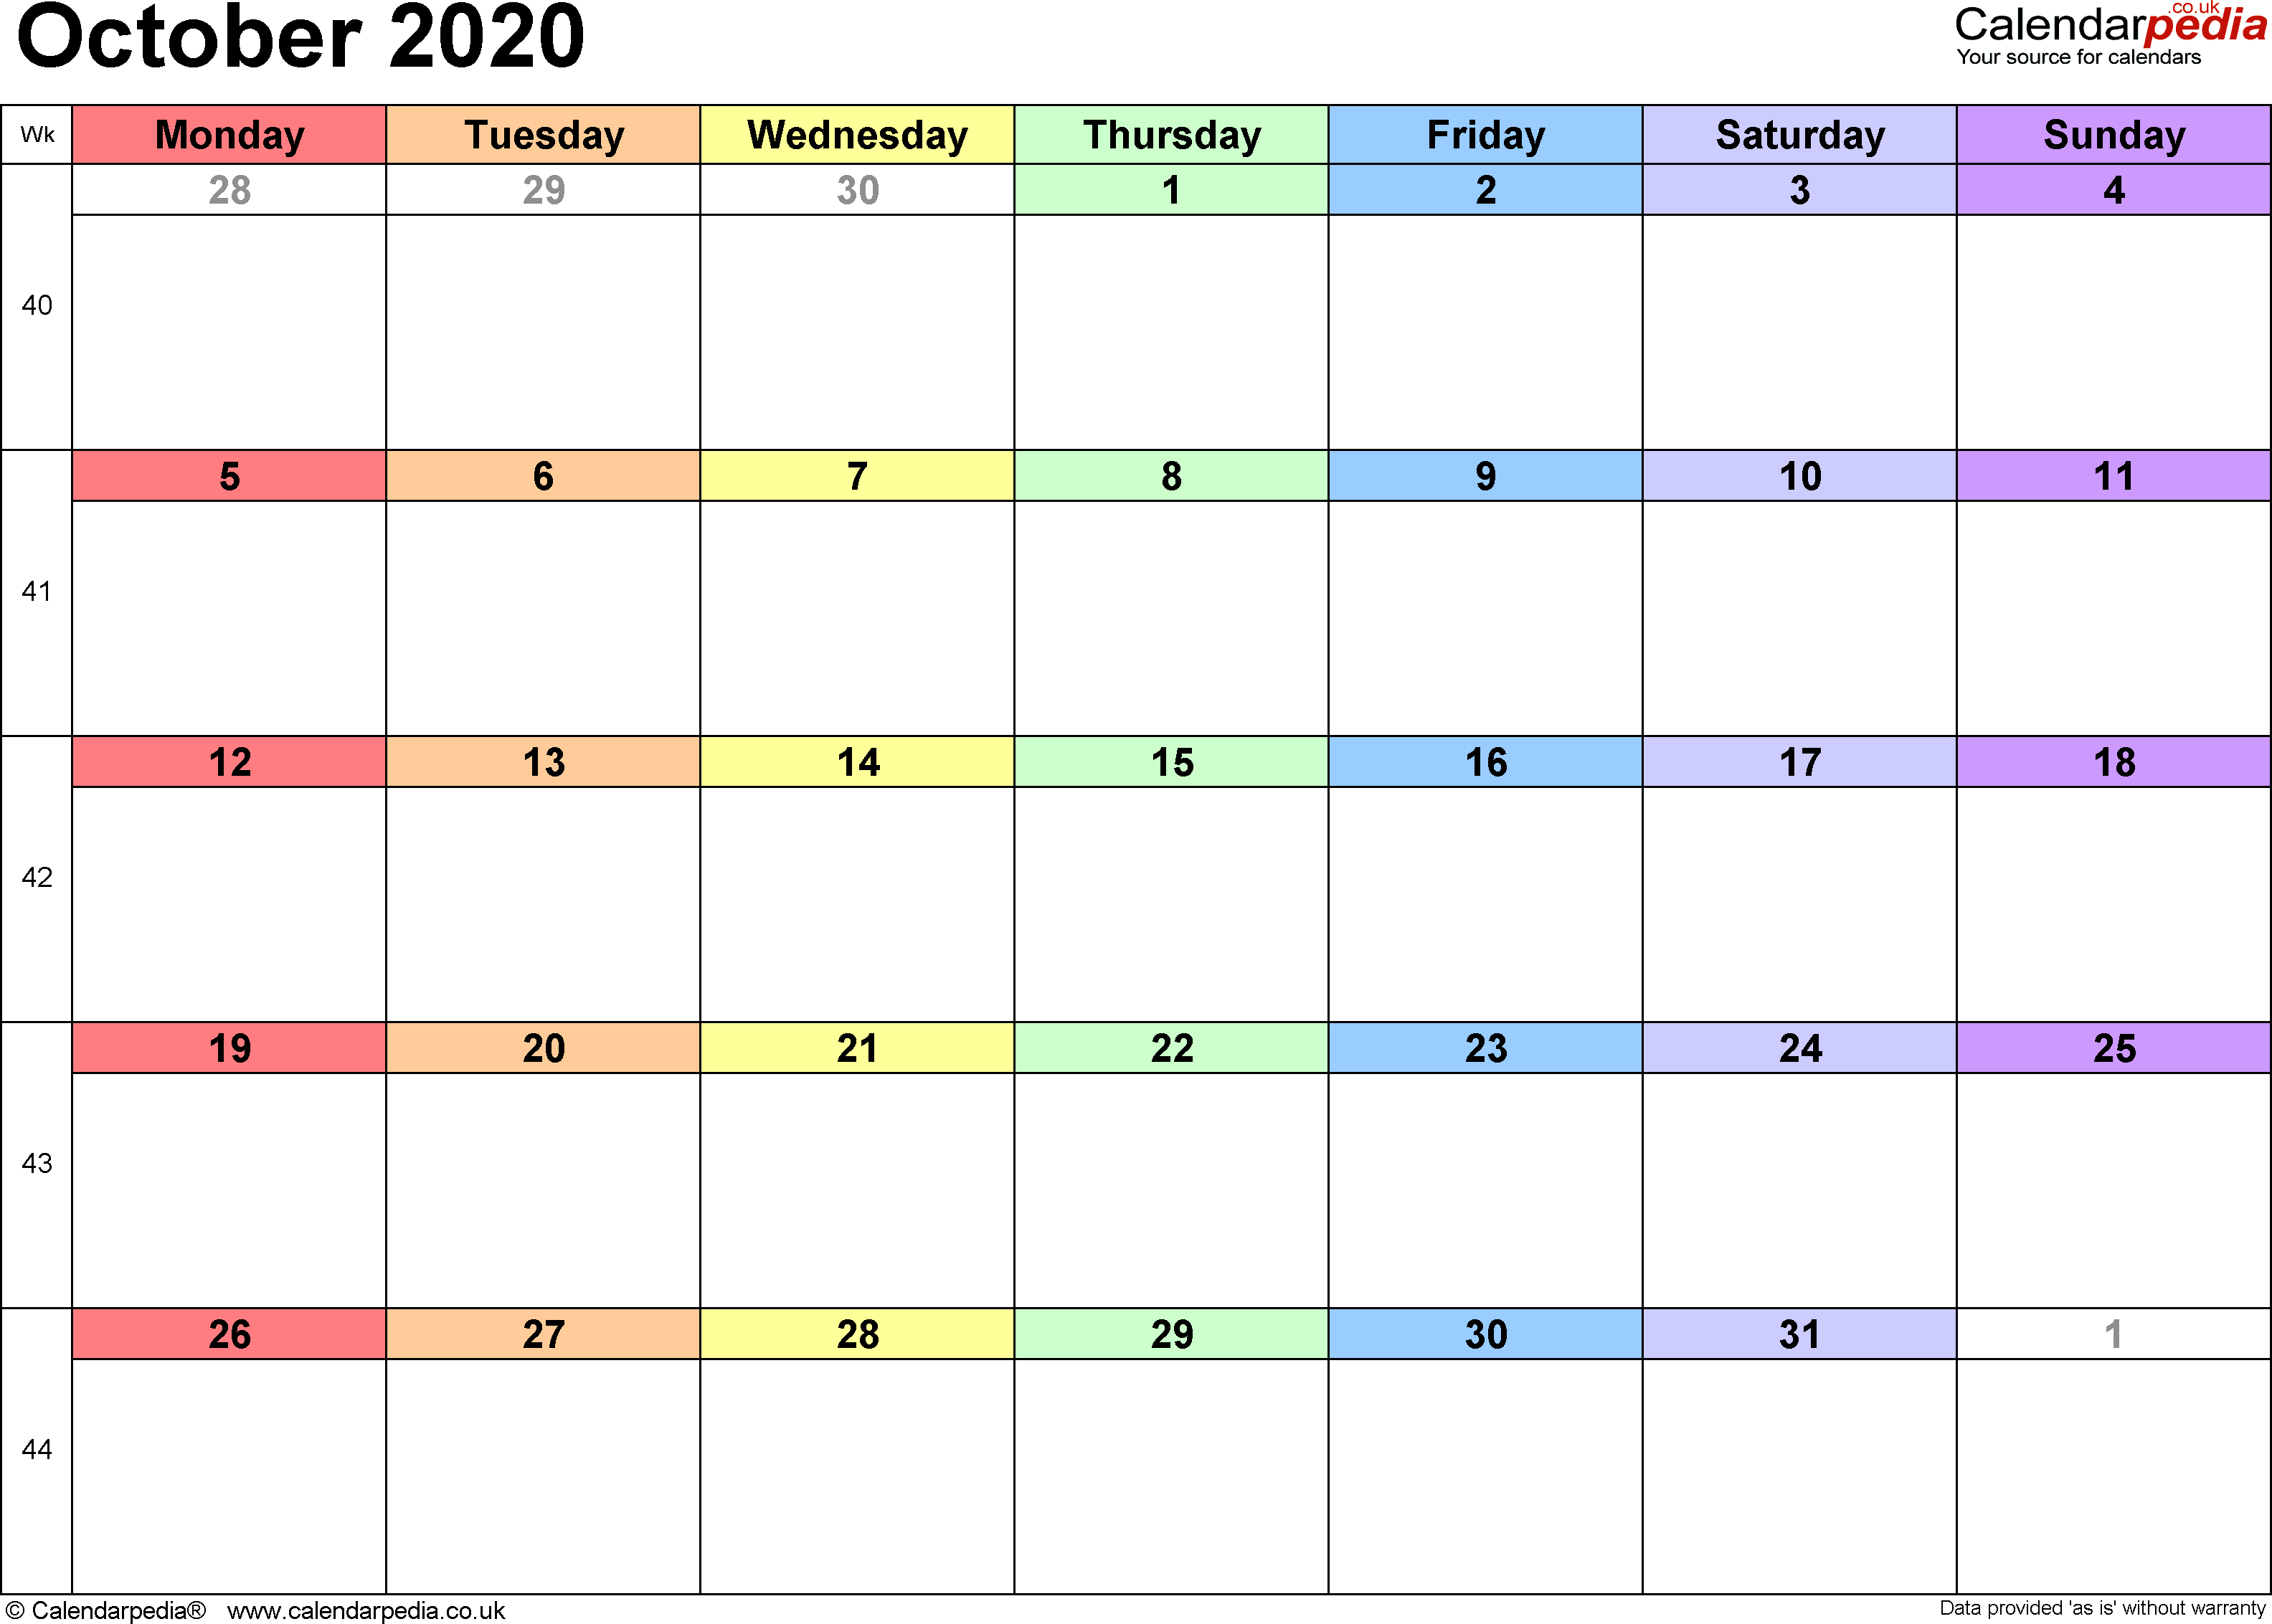 Calendar October 2020, landscape orientation, 1 page, with UK bank holidays and week numbers